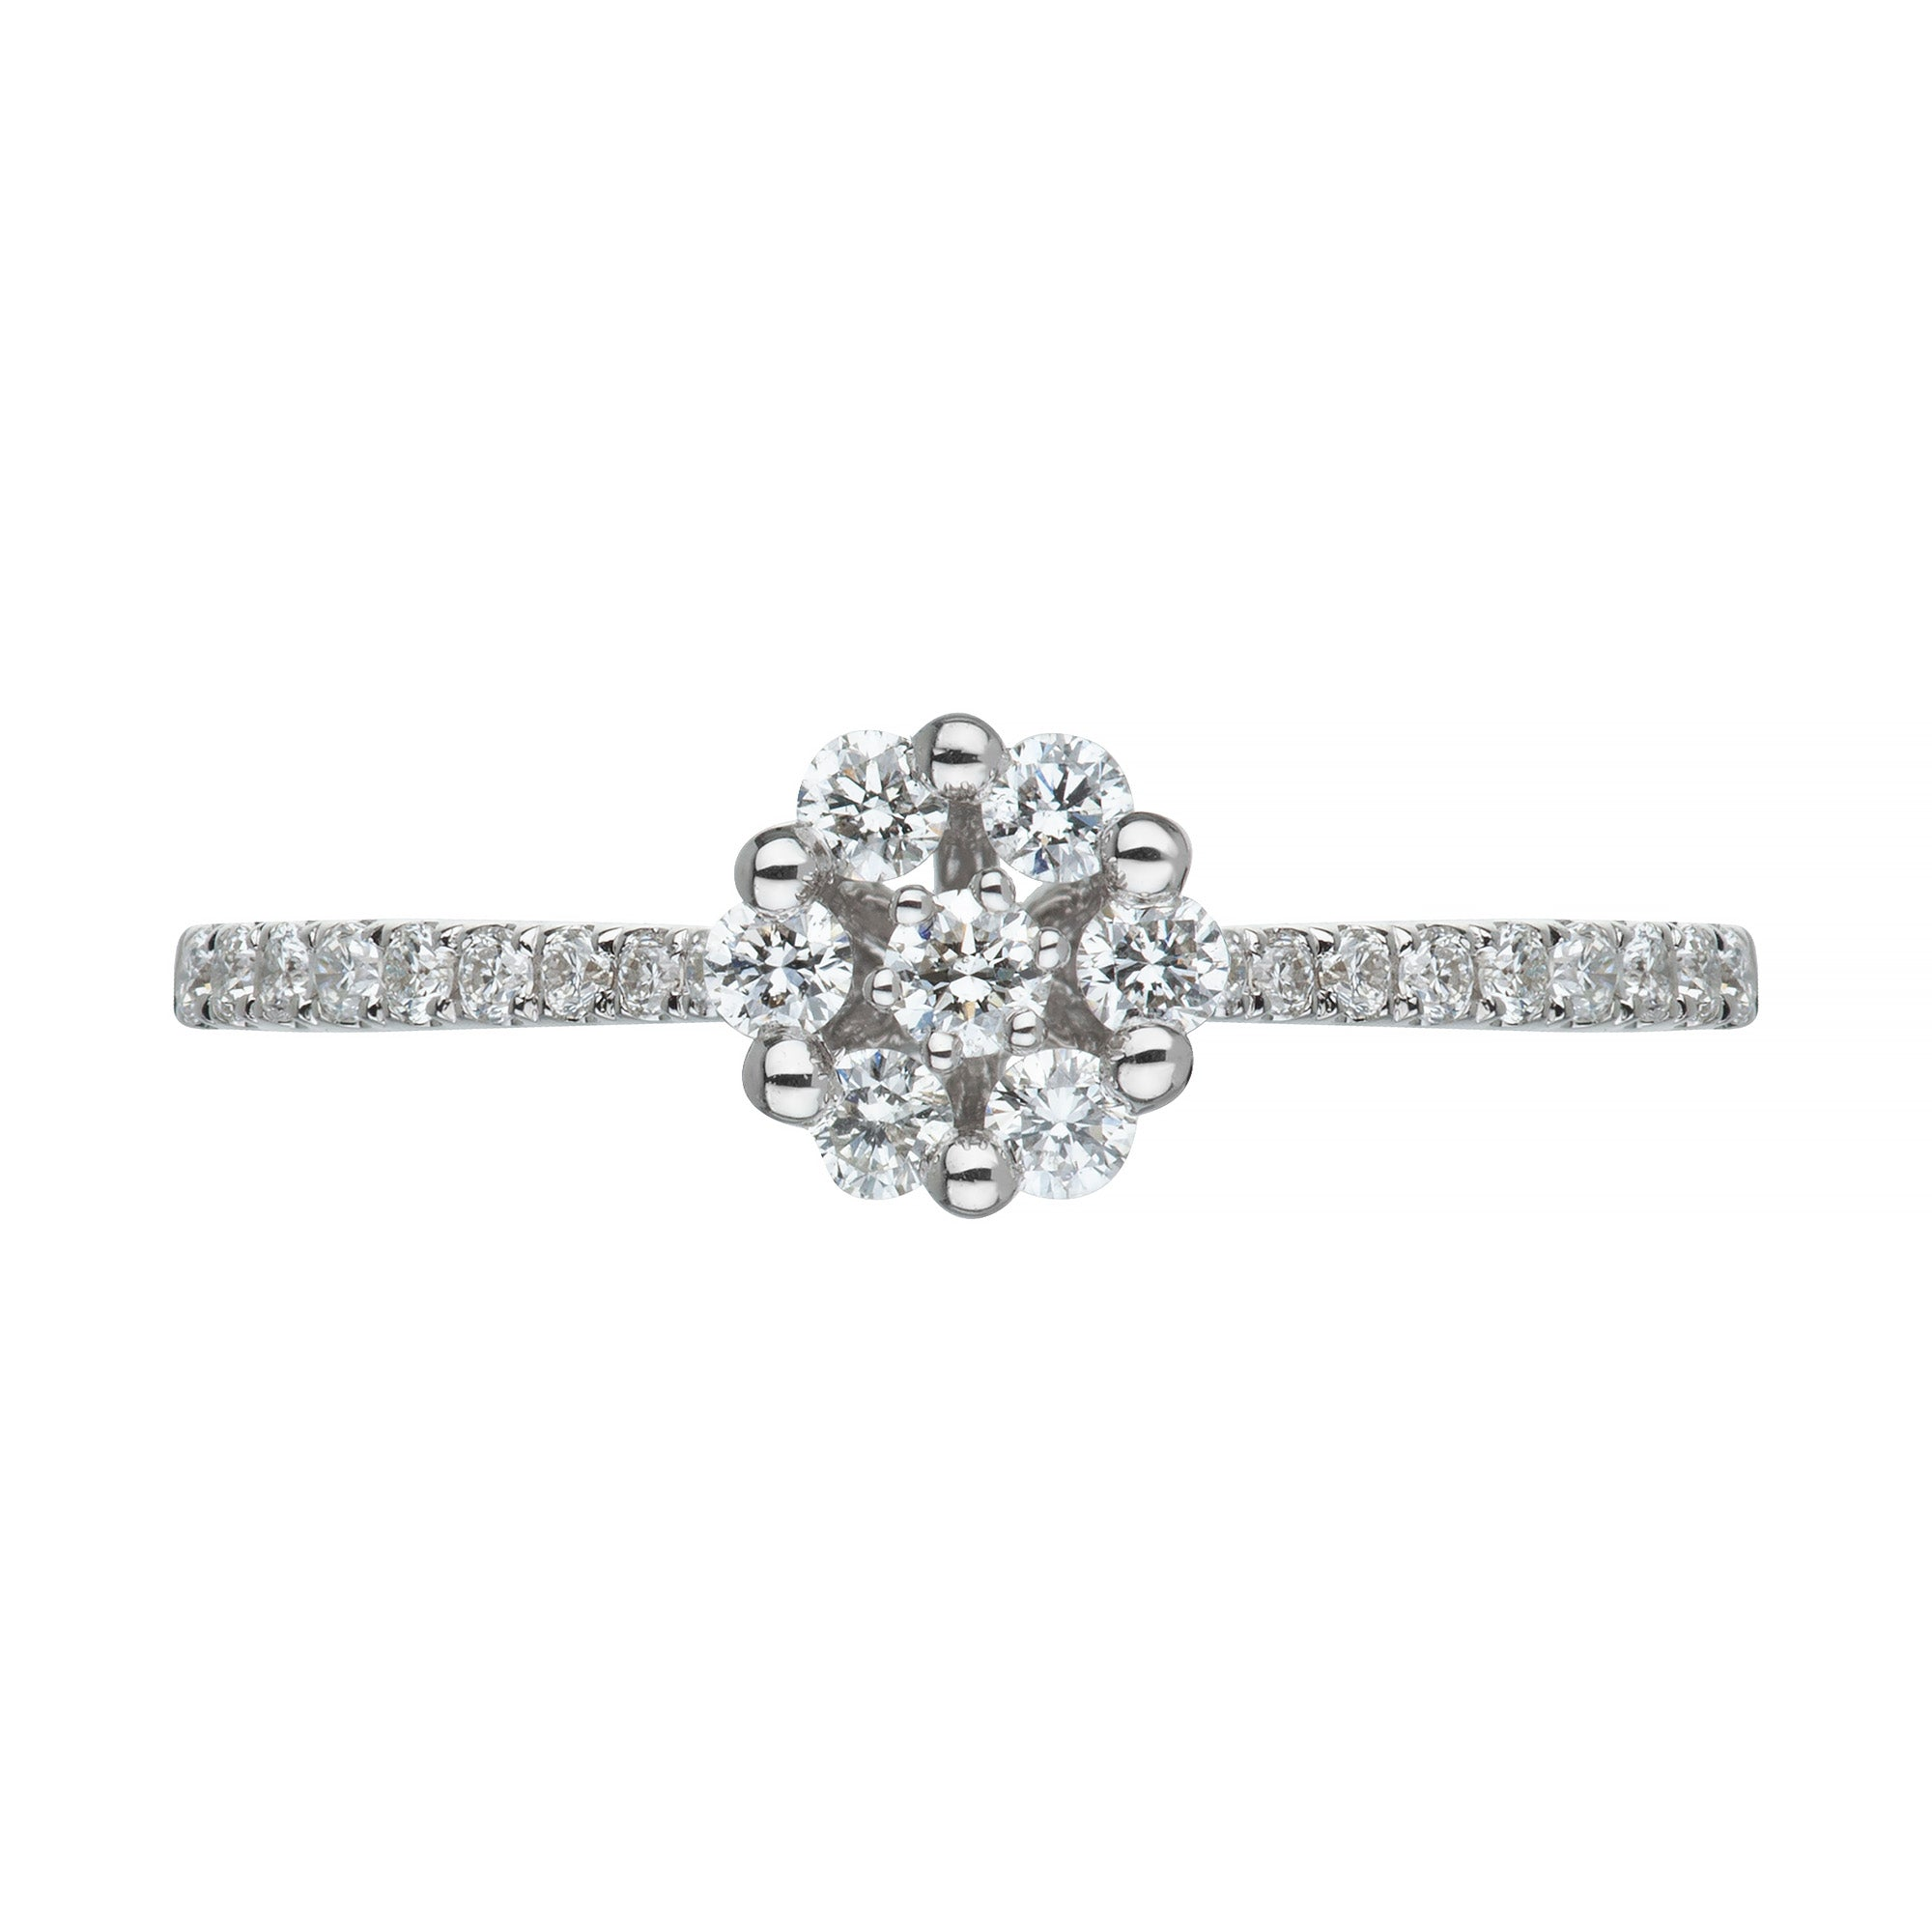 18ct white gold diamond cluster with shoulders ring